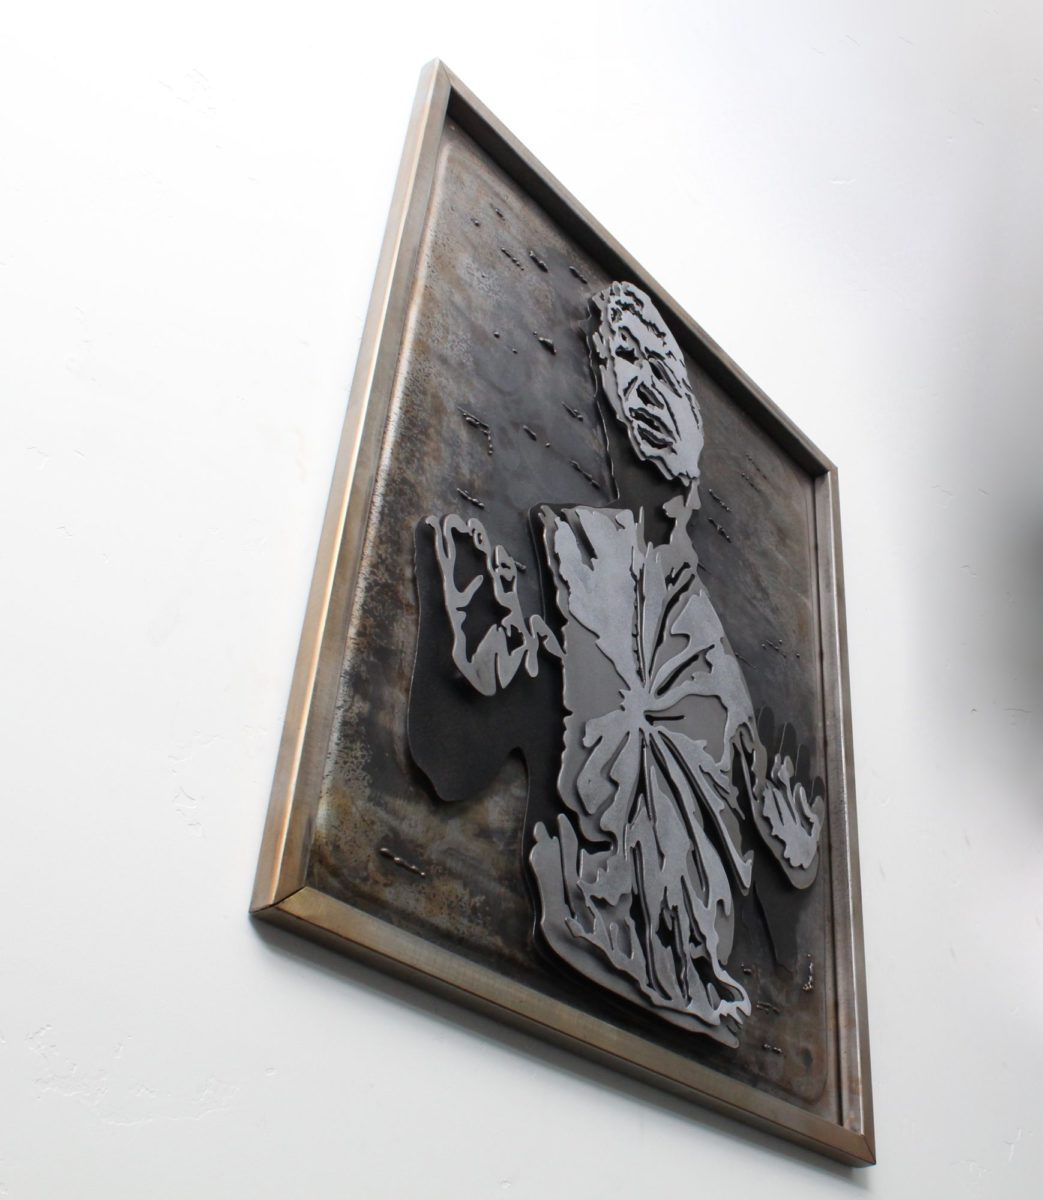 Star Wars Hans Solo, Laced Up Metal Wall Art